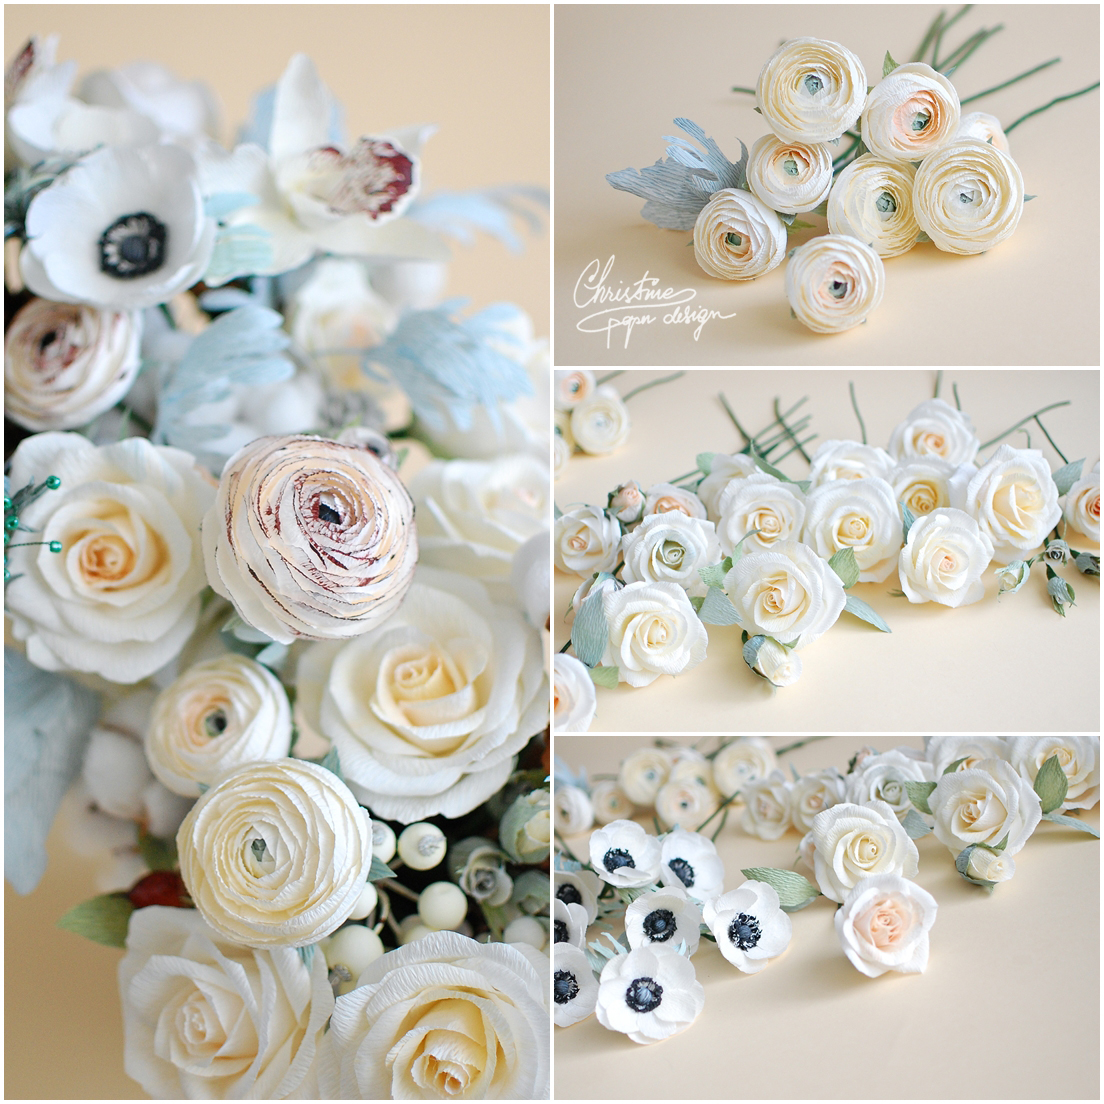 2Christine paper design - paper flowers